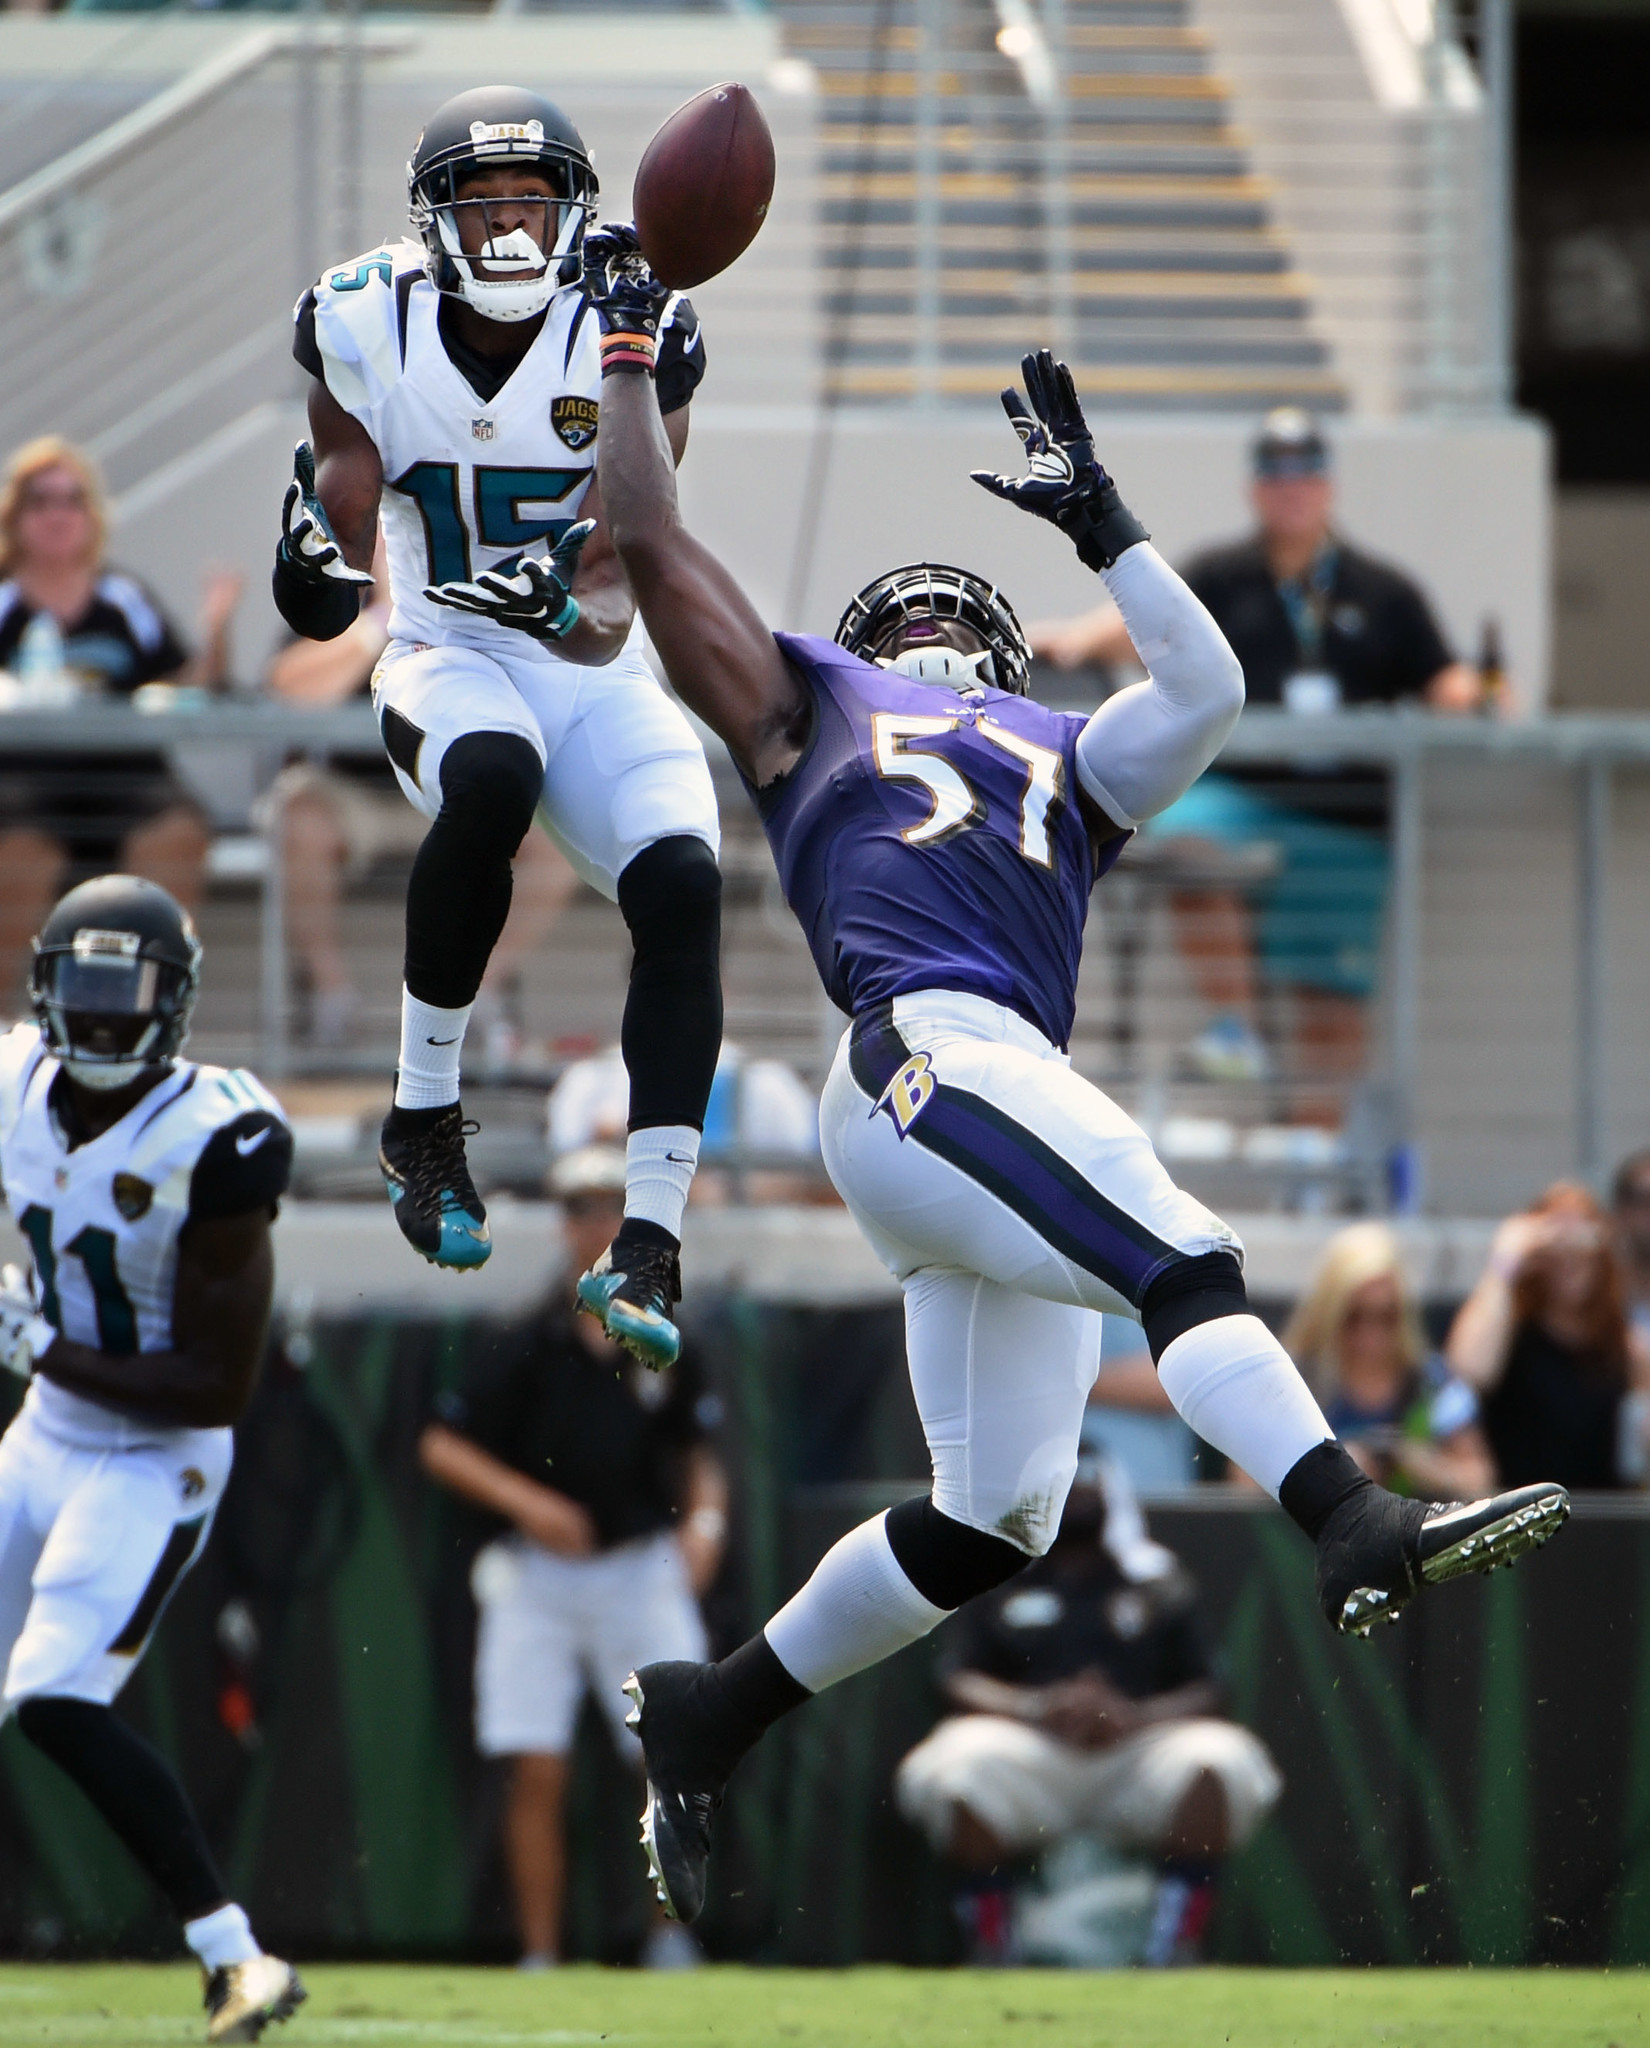 Ravens C J Mosley catching on at pass coverage Baltimore Sun